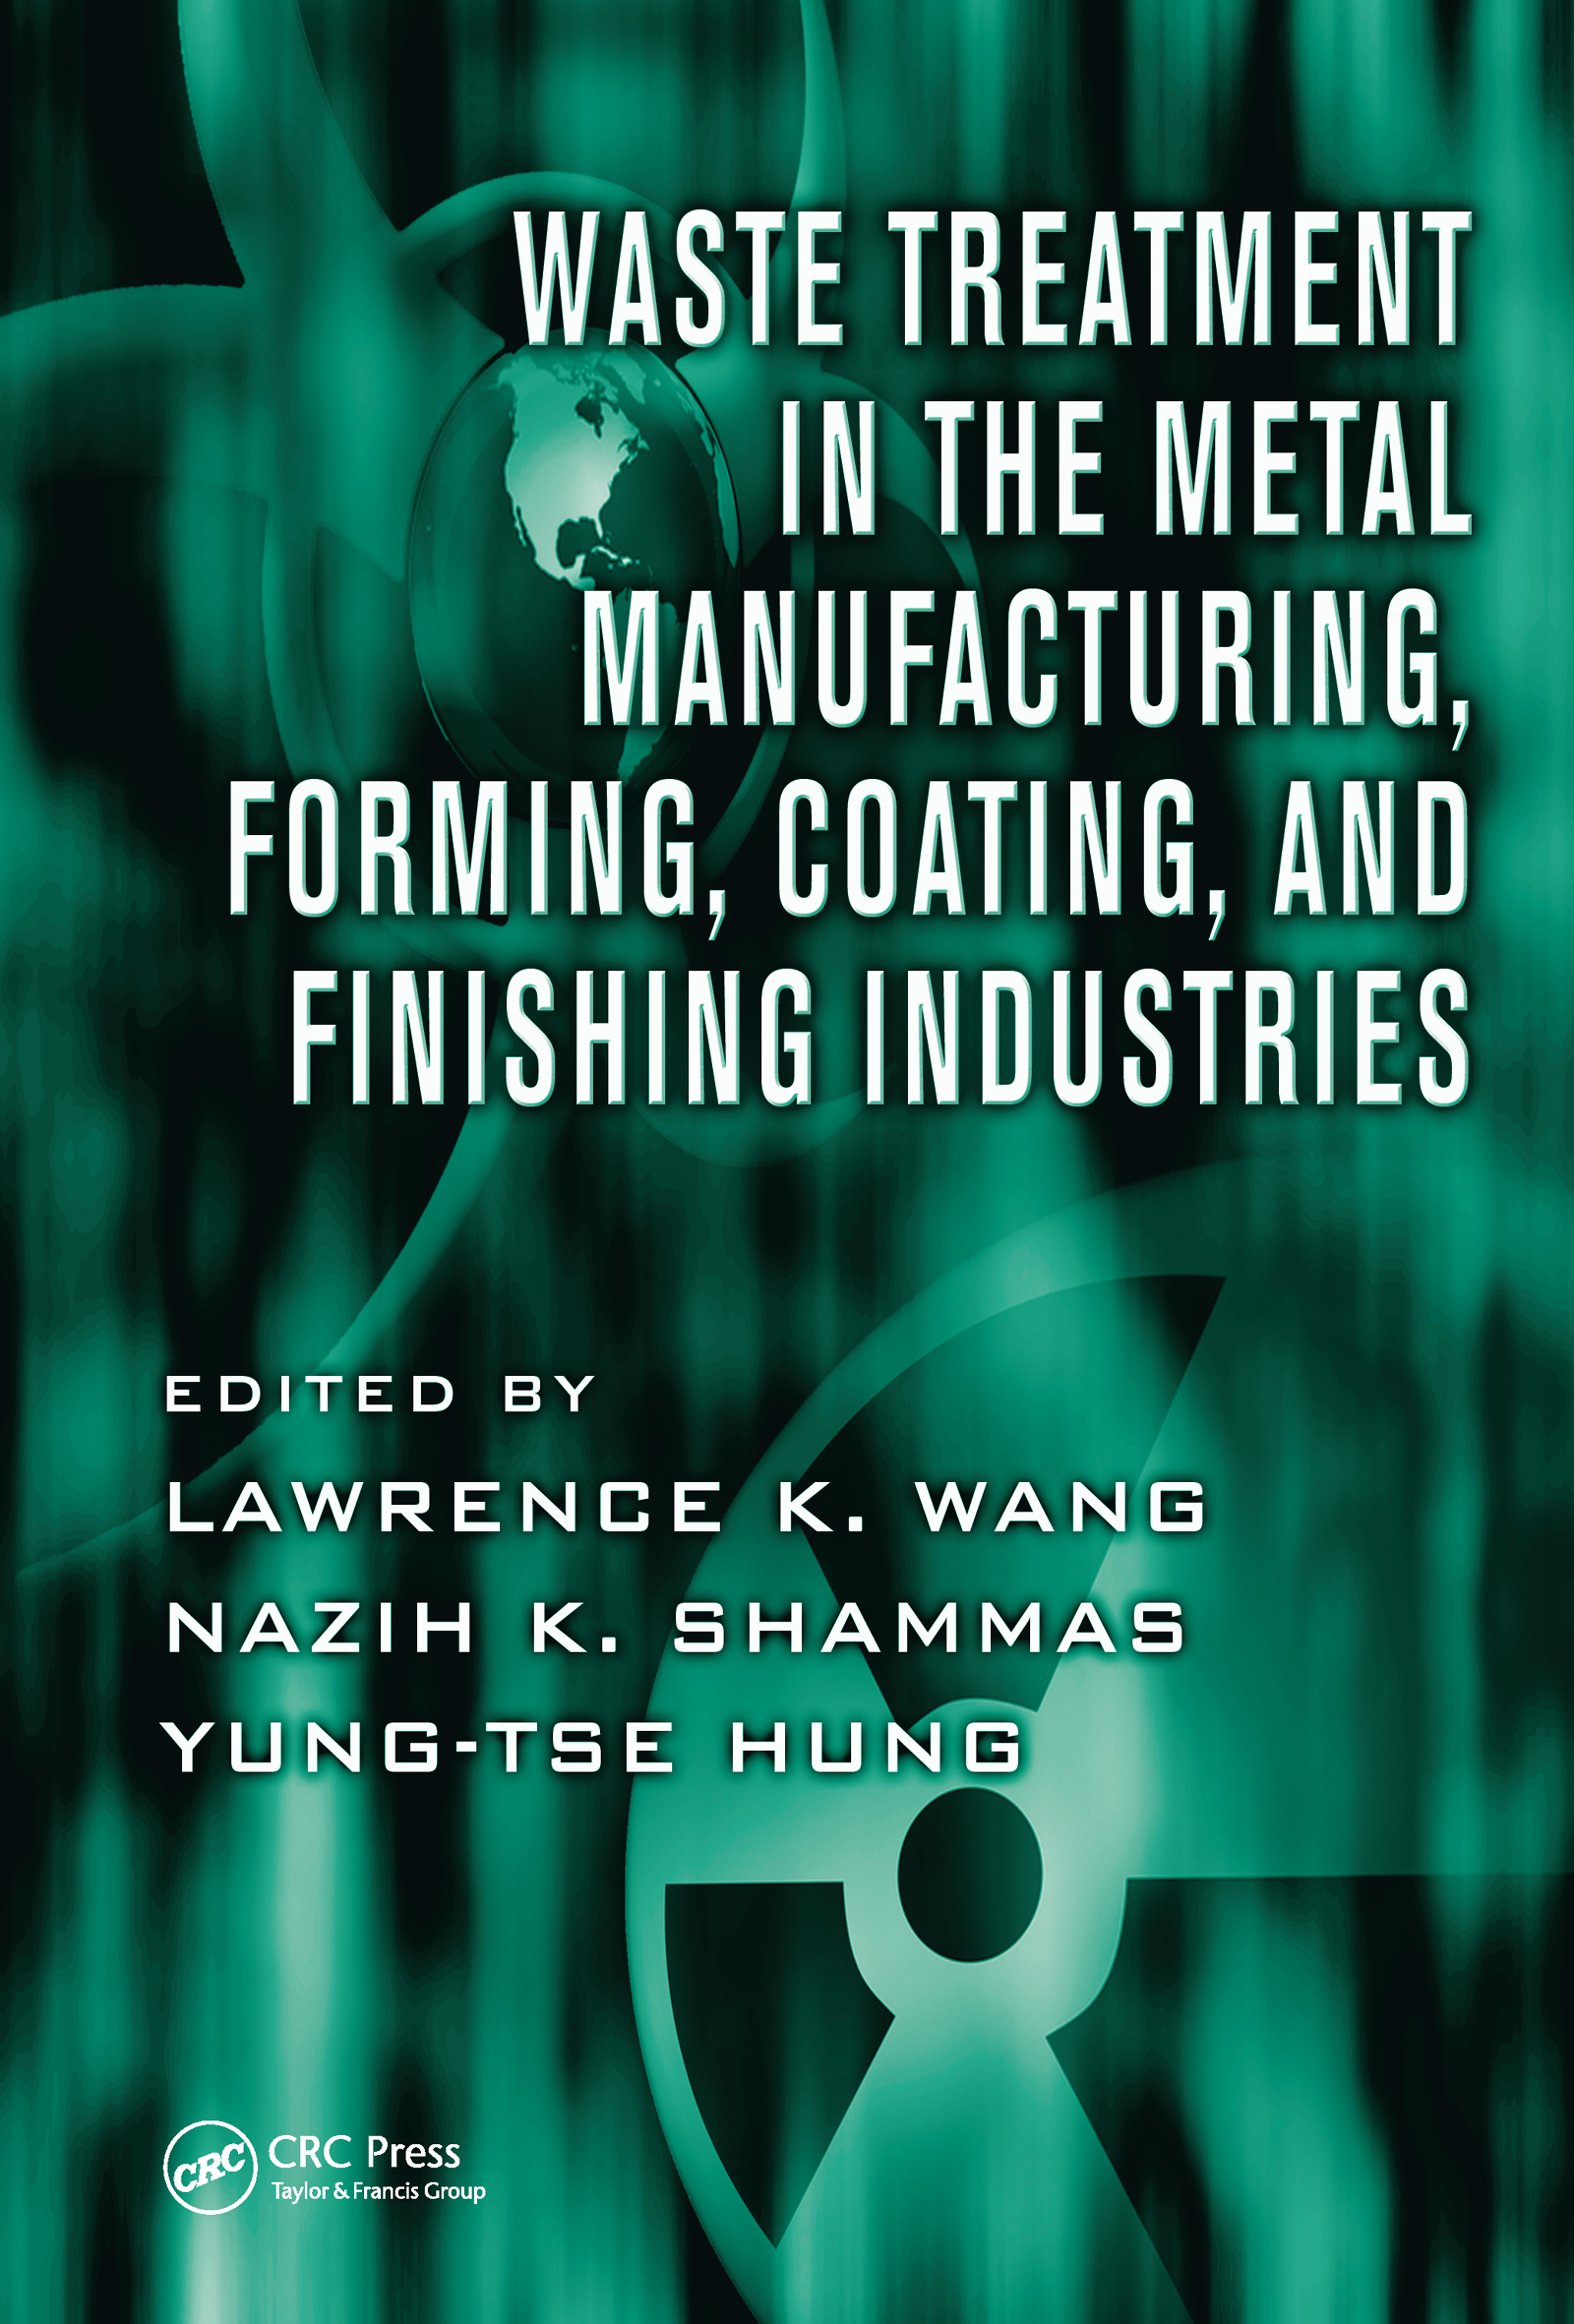 Waste Treatment in the Metal Manufacturing, Forming, Coating, and Finishing Industries book cover